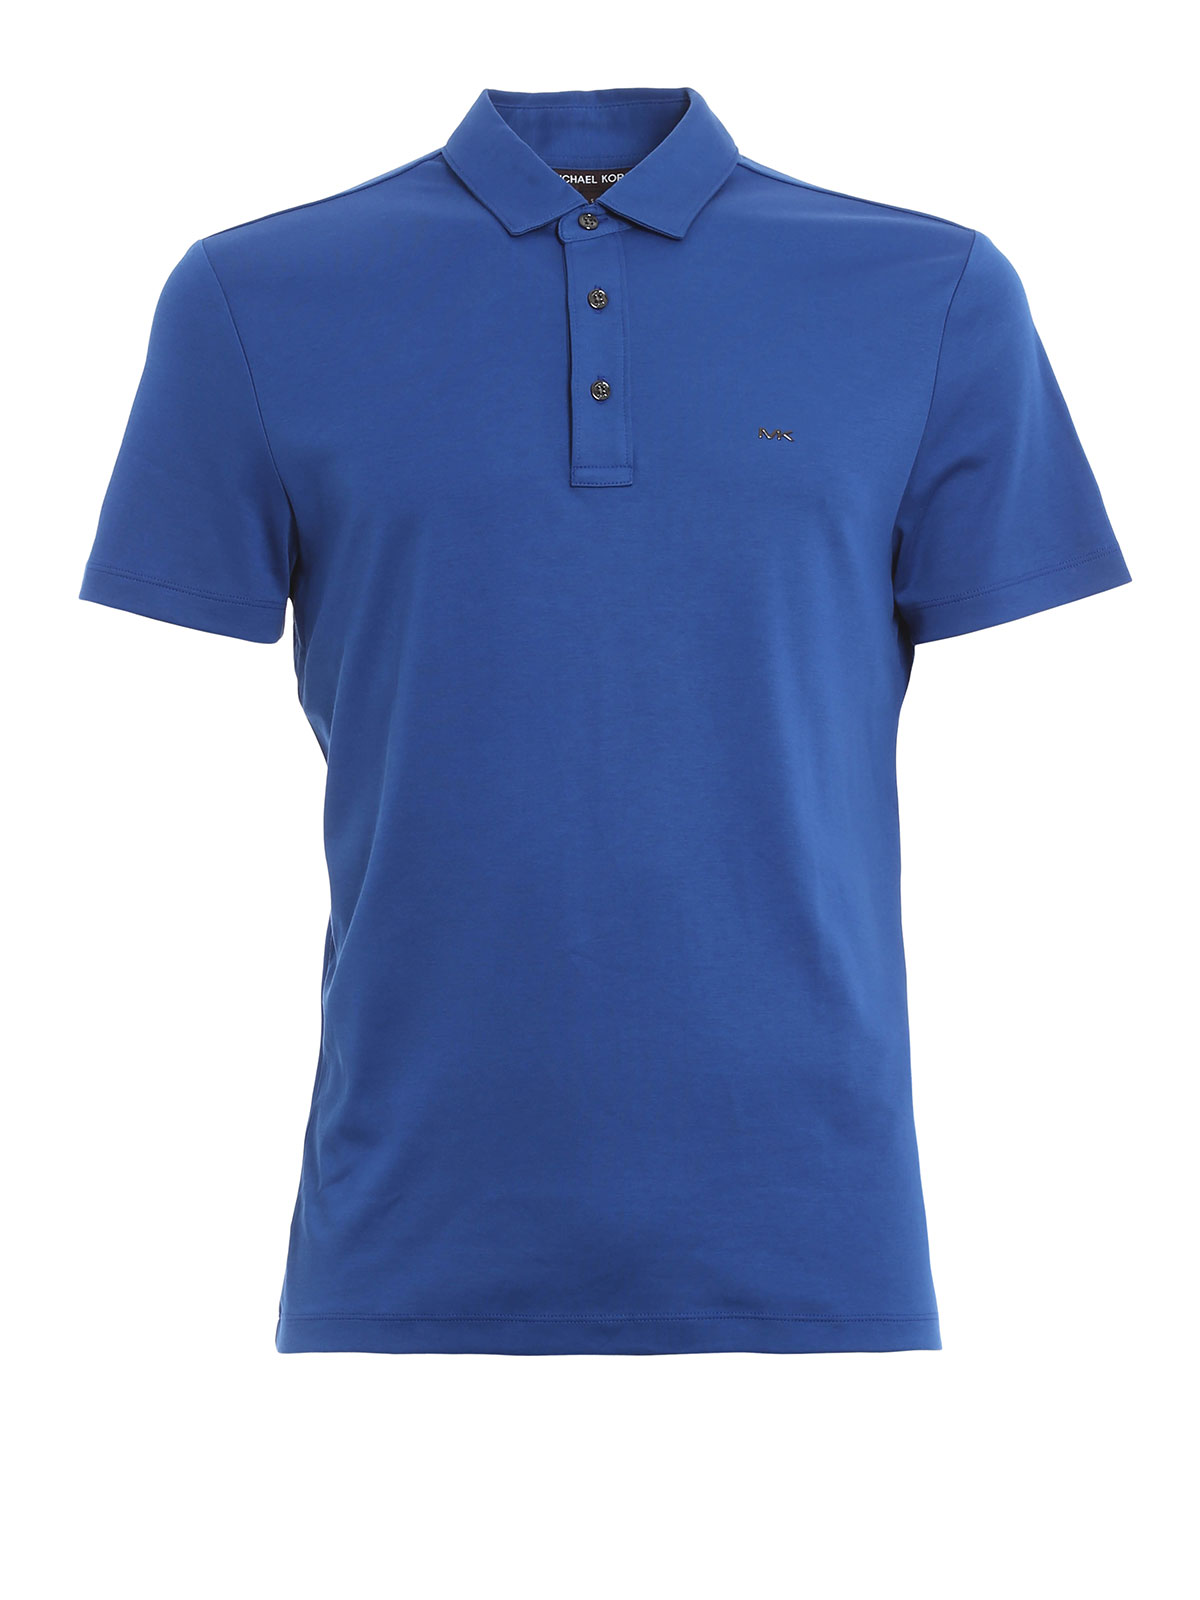 Comfy promotional cotton golf shirts breathe to keep them cool on the links or in the office! Put your embroidered company brand on stylish cotton polos for a winner!